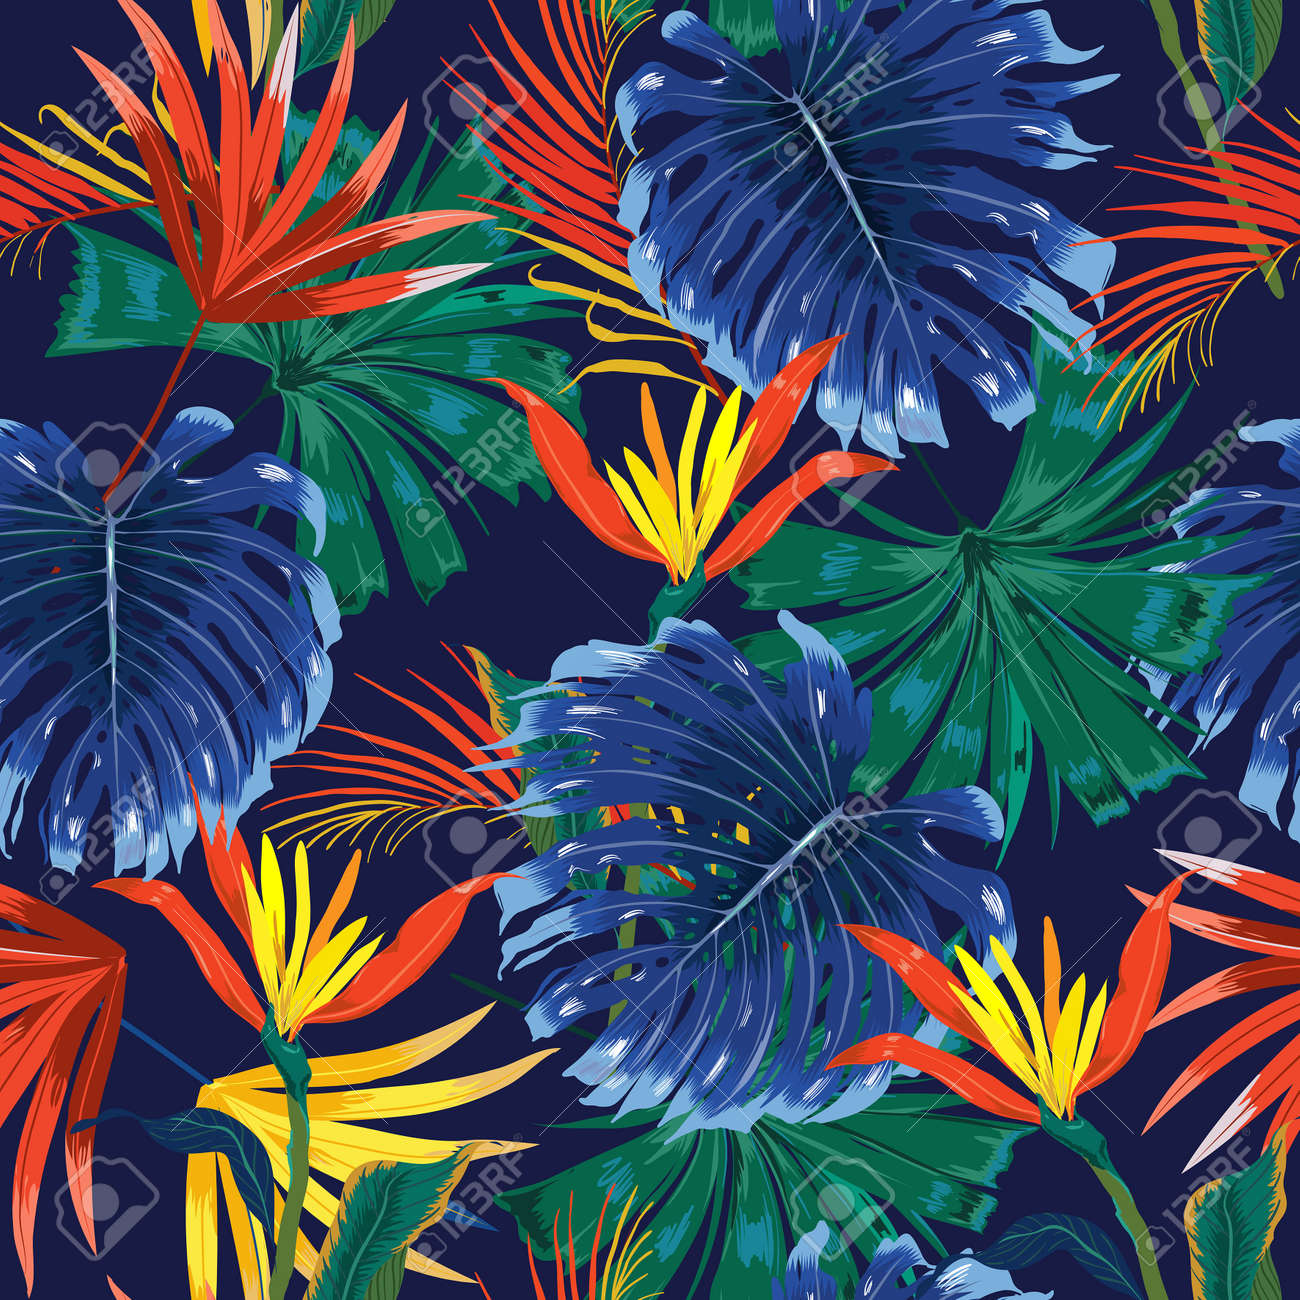 Trendy Dark jungle tropical forest ,contrasts with colorful Exotic flower and foliage leaves ,Design for fashion , fabric, textile, wallpaper, cover, web , wrapping and all prints on navy blue background color - 168545739